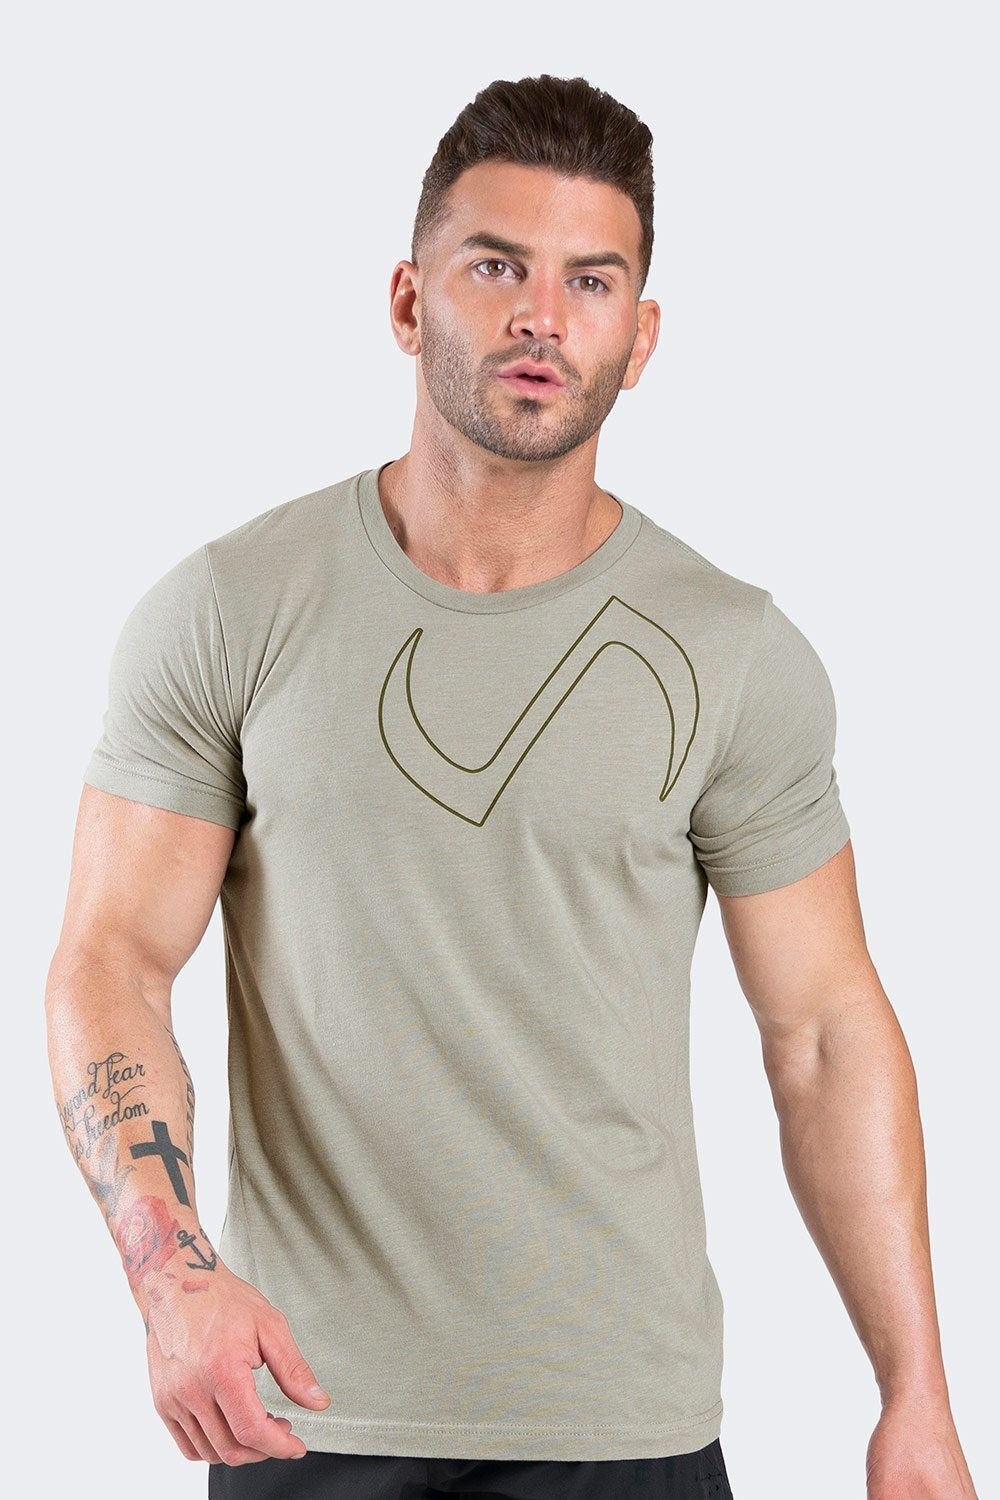 TLF Orbit T-Shirt - GRAPHIC T-SHIRTS - TLF Apparel | Take Life Further